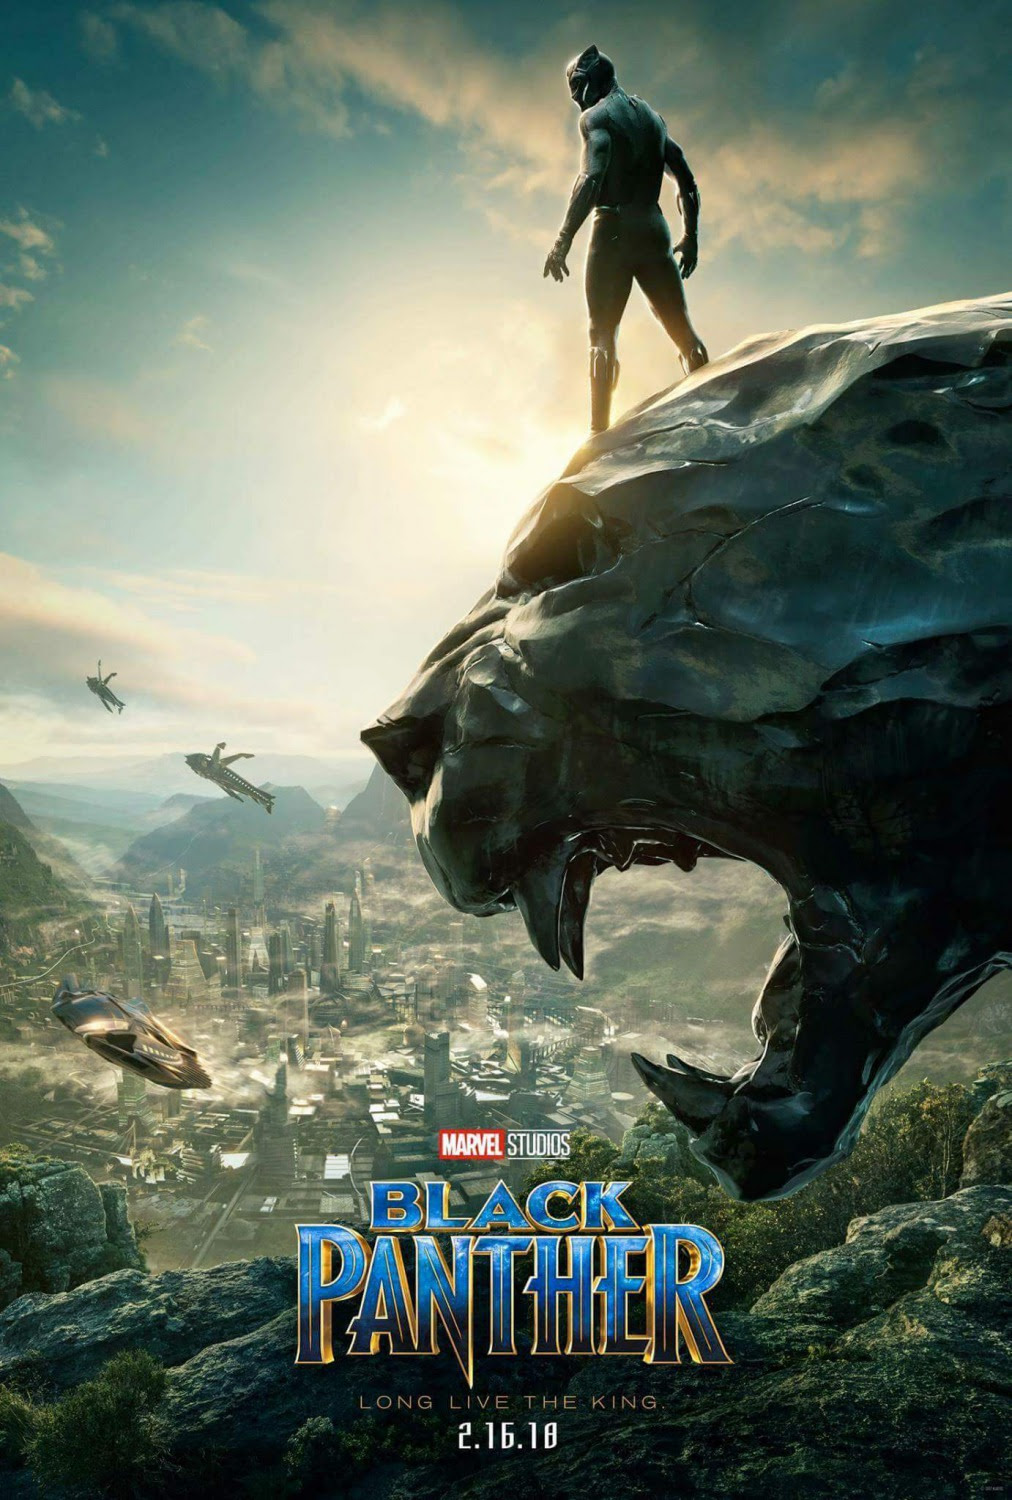 Extra Large Movie Poster Image for Black Panther (#2 of 23)